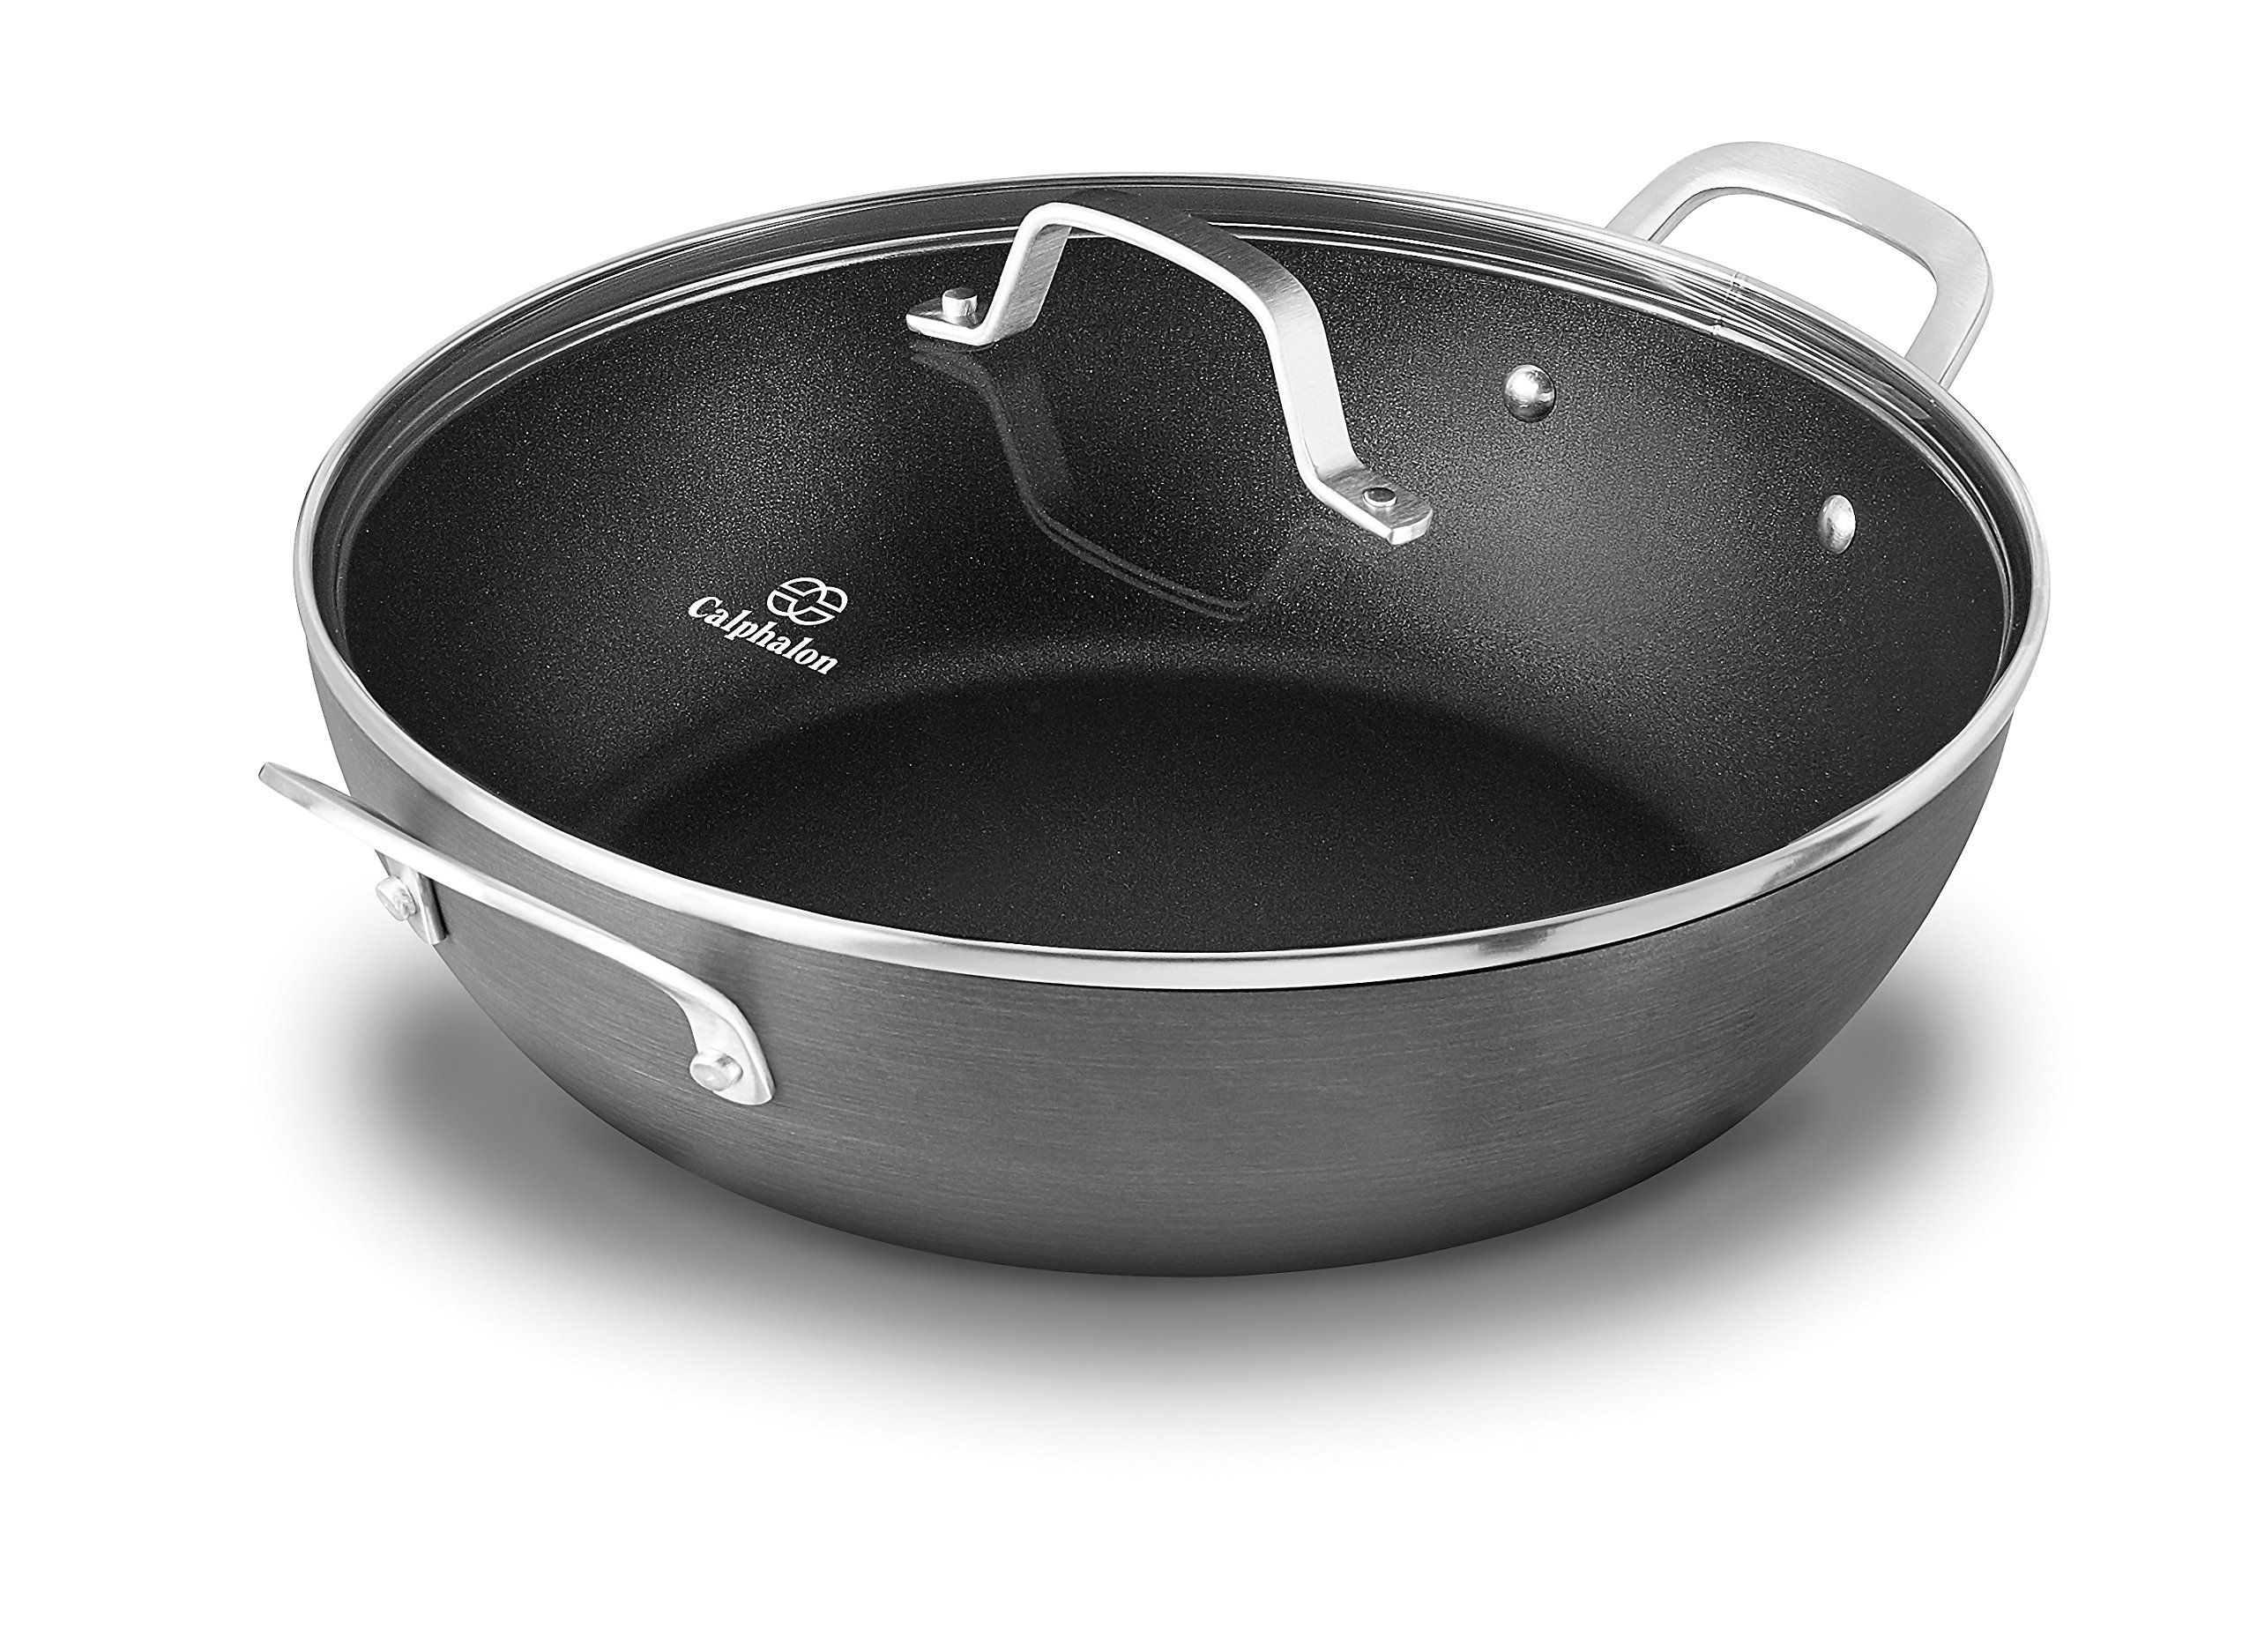 Calphalon 1932442 Classic Nonstick All Purpose Pan with Cover, 12-Inch, Grey by Calphalon